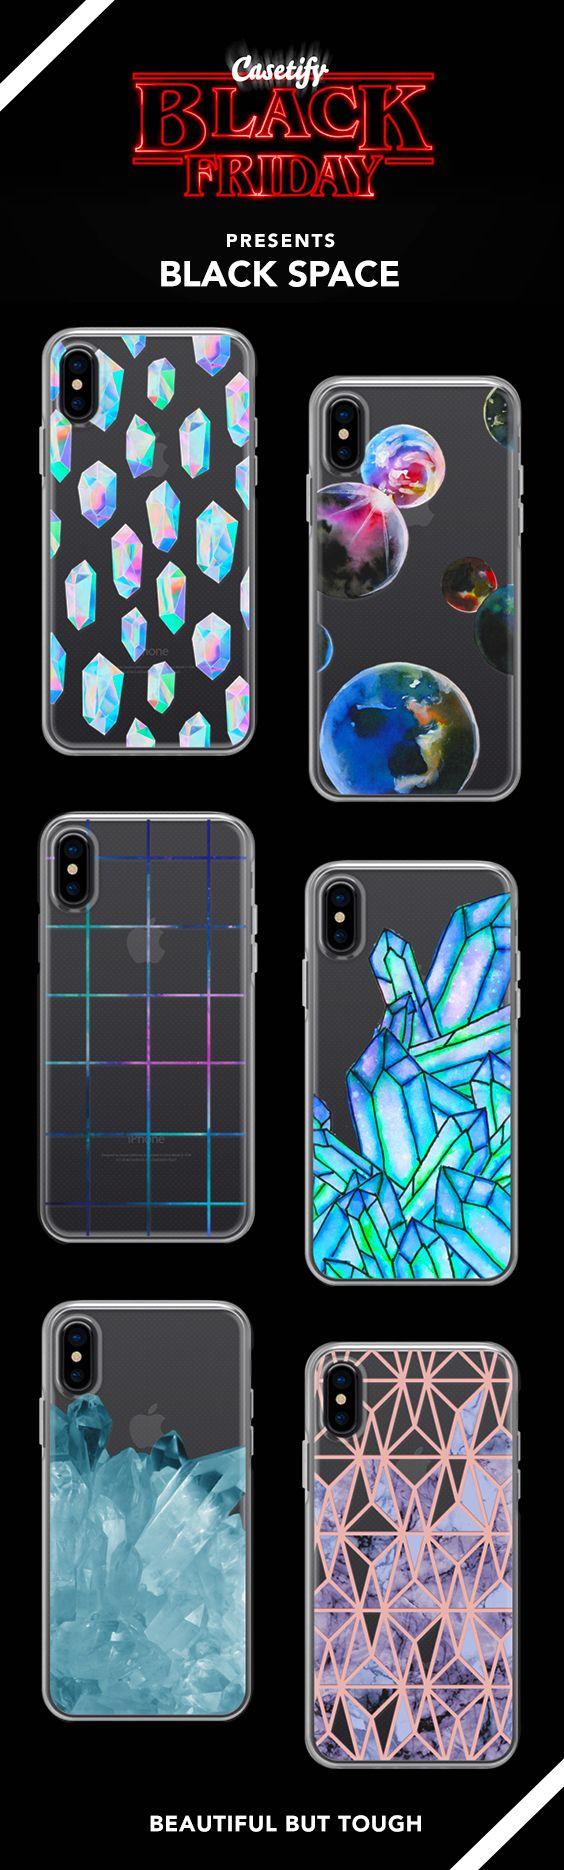 Black Friday Special:  Most Wanted Space iPhone X, iPhone 8, iPhone 8 plus, iPhone 7, iPhone 7 Plus case. - Shop them here ☝️☝️☝️ BEAUTIFUL BUT TOUGH ✨  - fashion, illustrators, galaxy, illustrations, fashionista